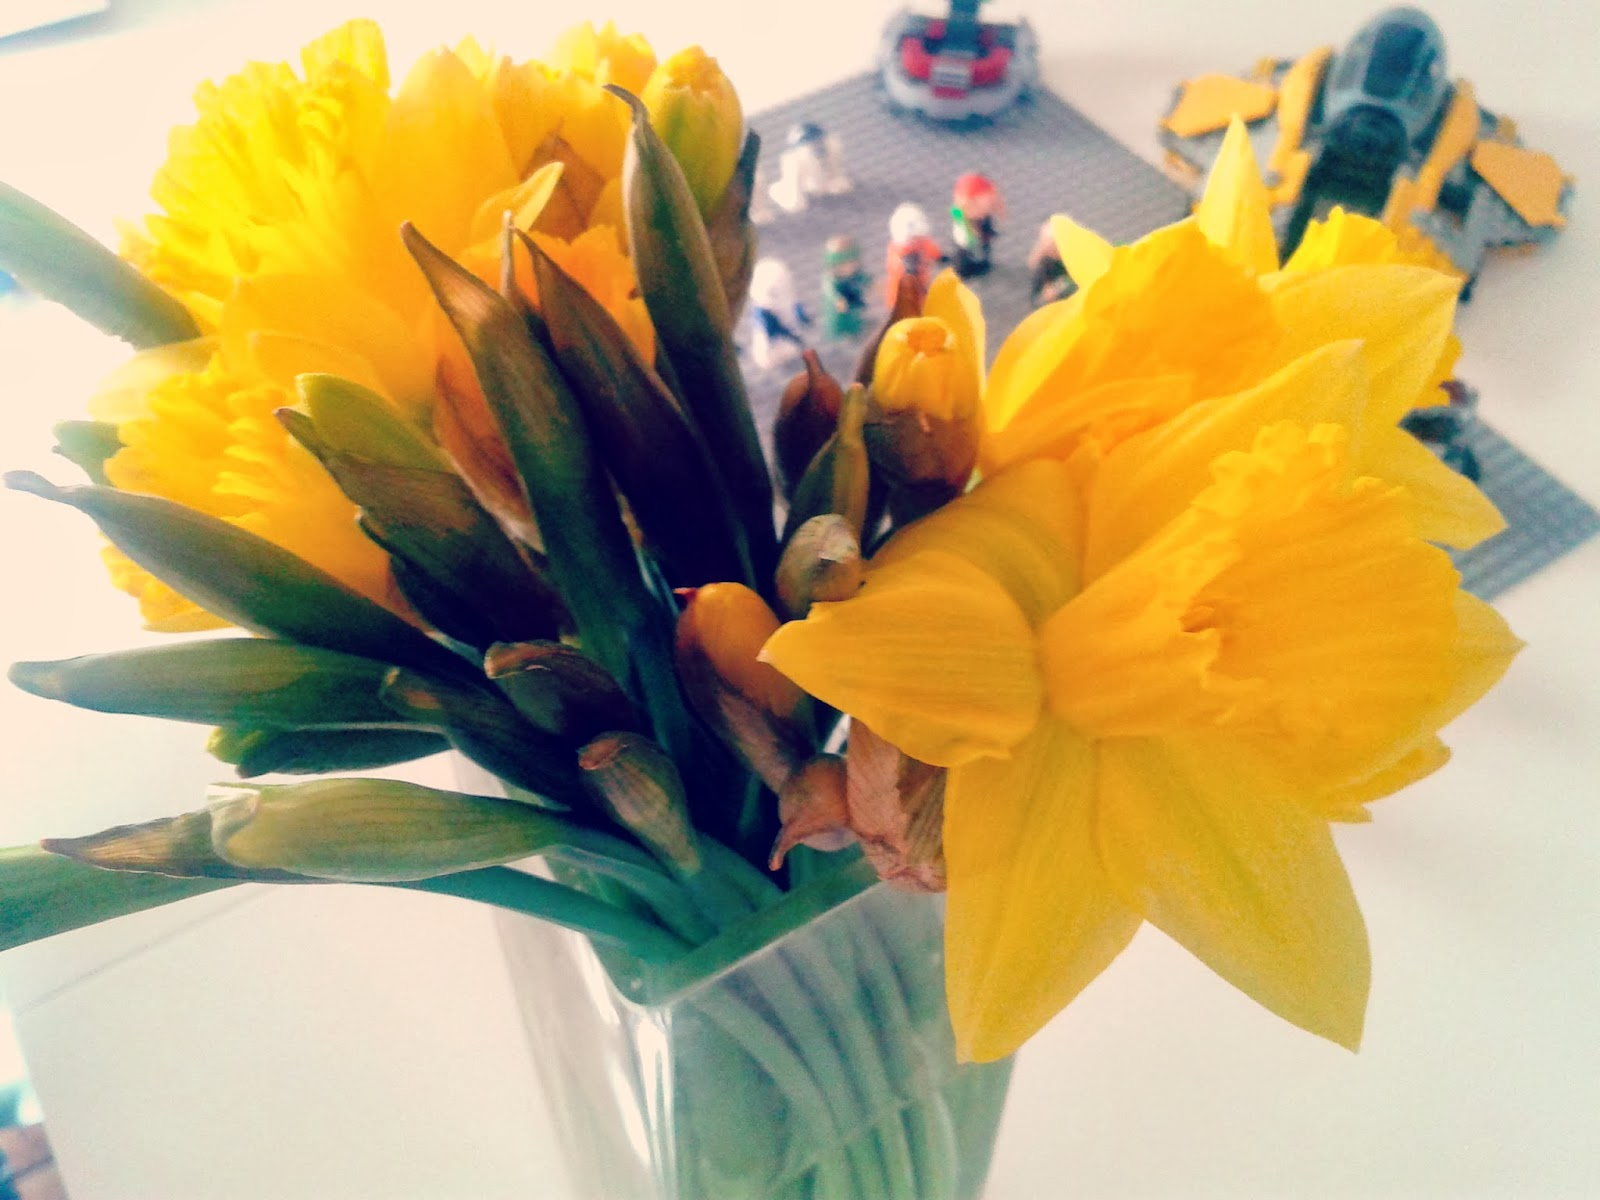 Project 365 day 55 - Daffodils and Lego // 76sunflowers